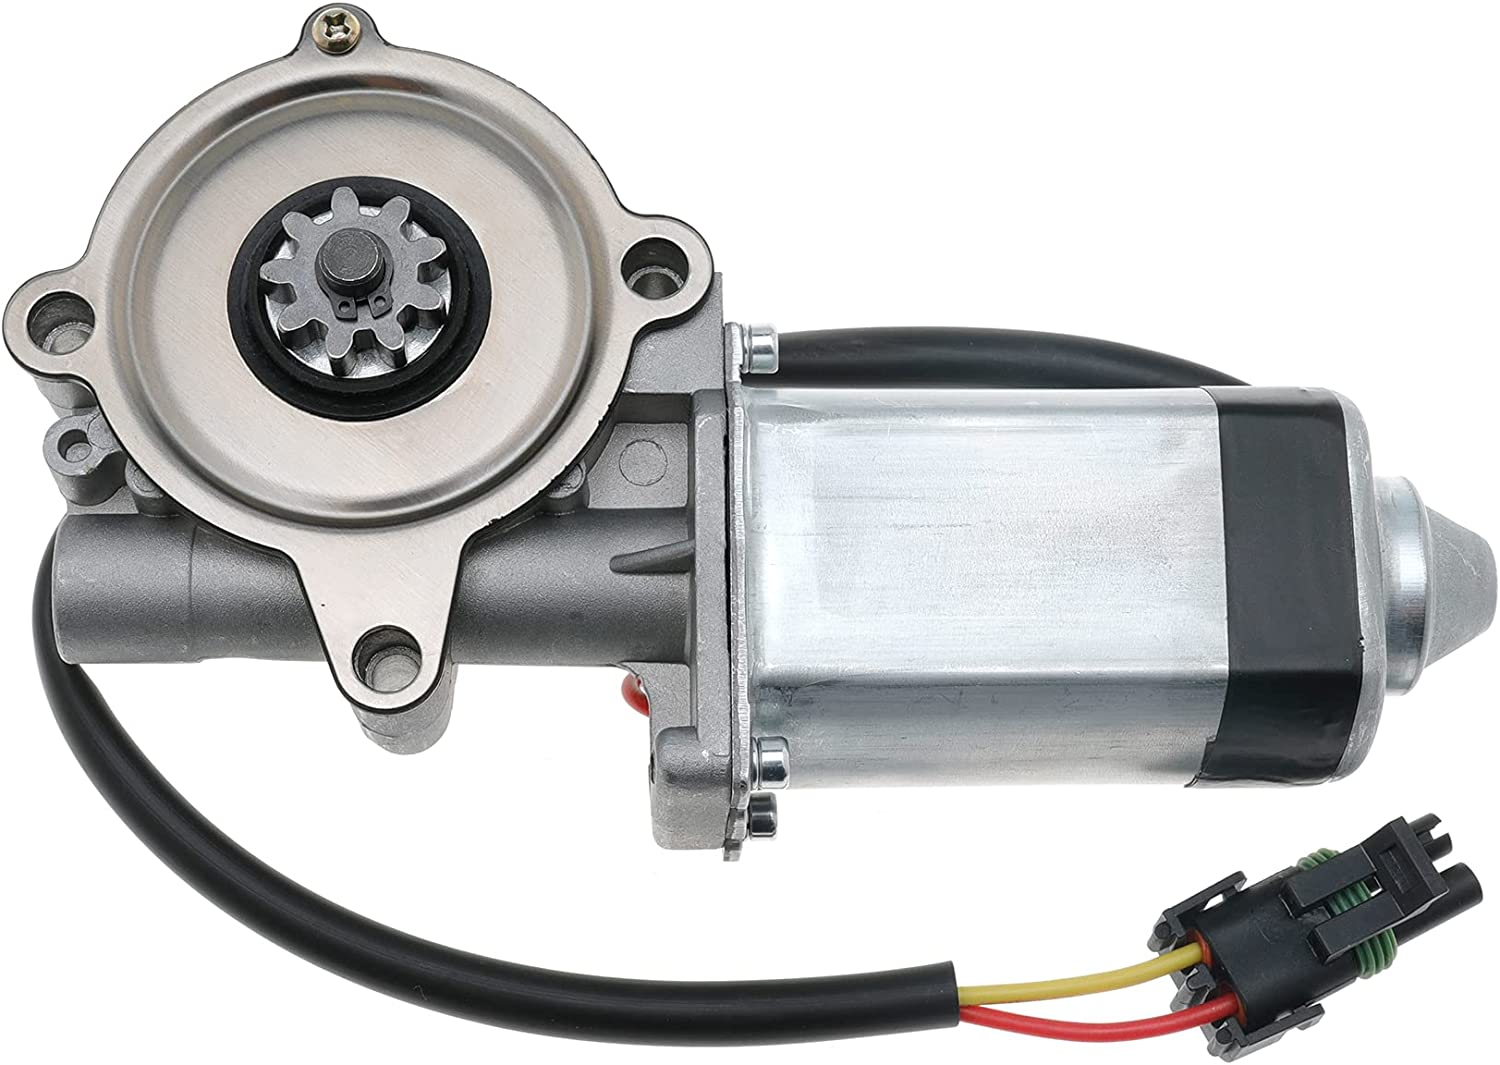 300-1406 Electric Entry Step Motor for RV Coach Motorhome Toyhauler Replace 369506 301695 1820124 163669